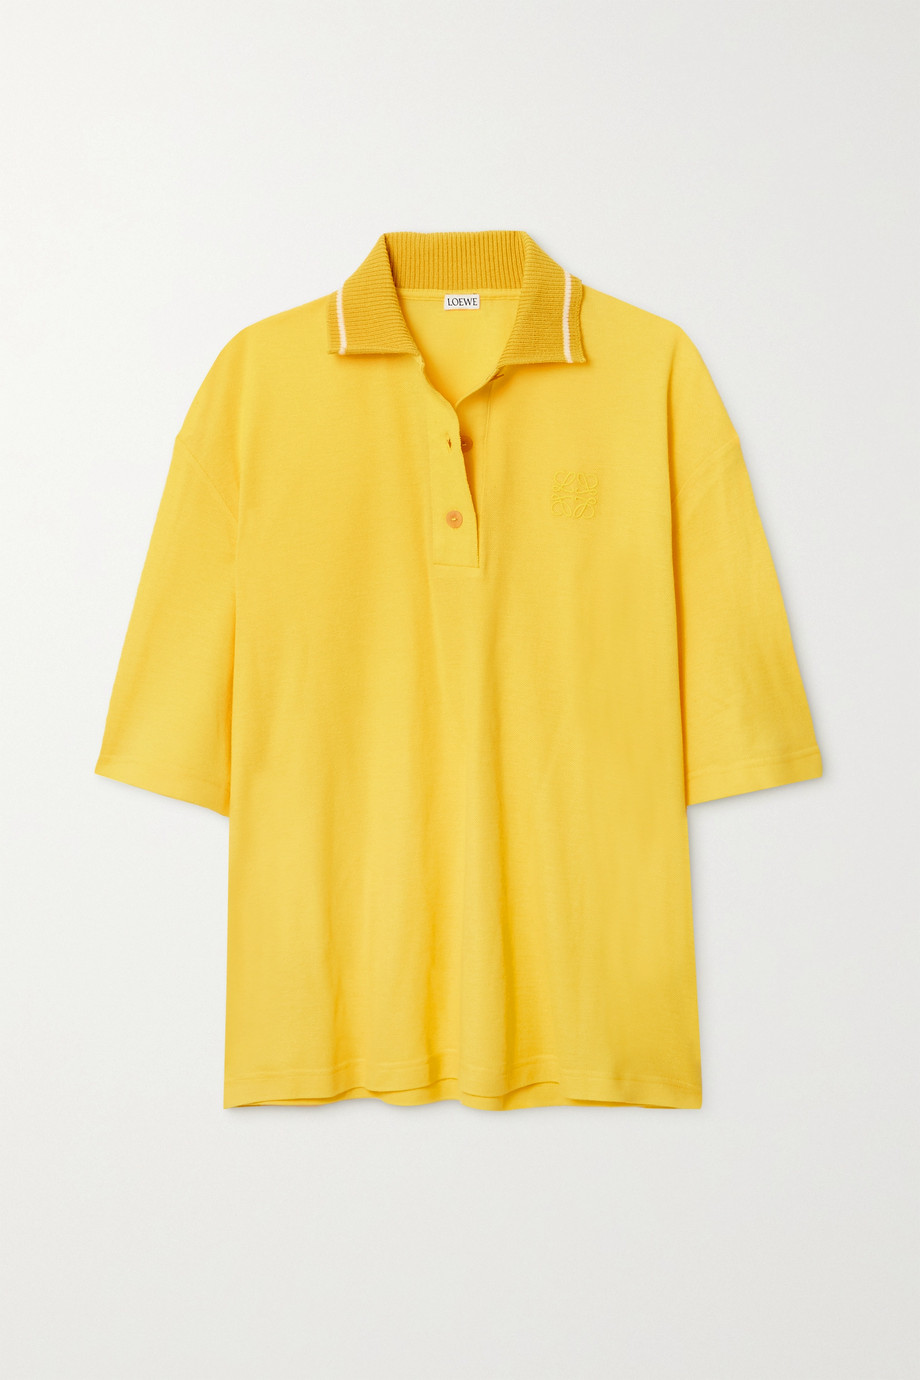 Loewe Oversized cotton and cashmere-blend piqué polo shirt